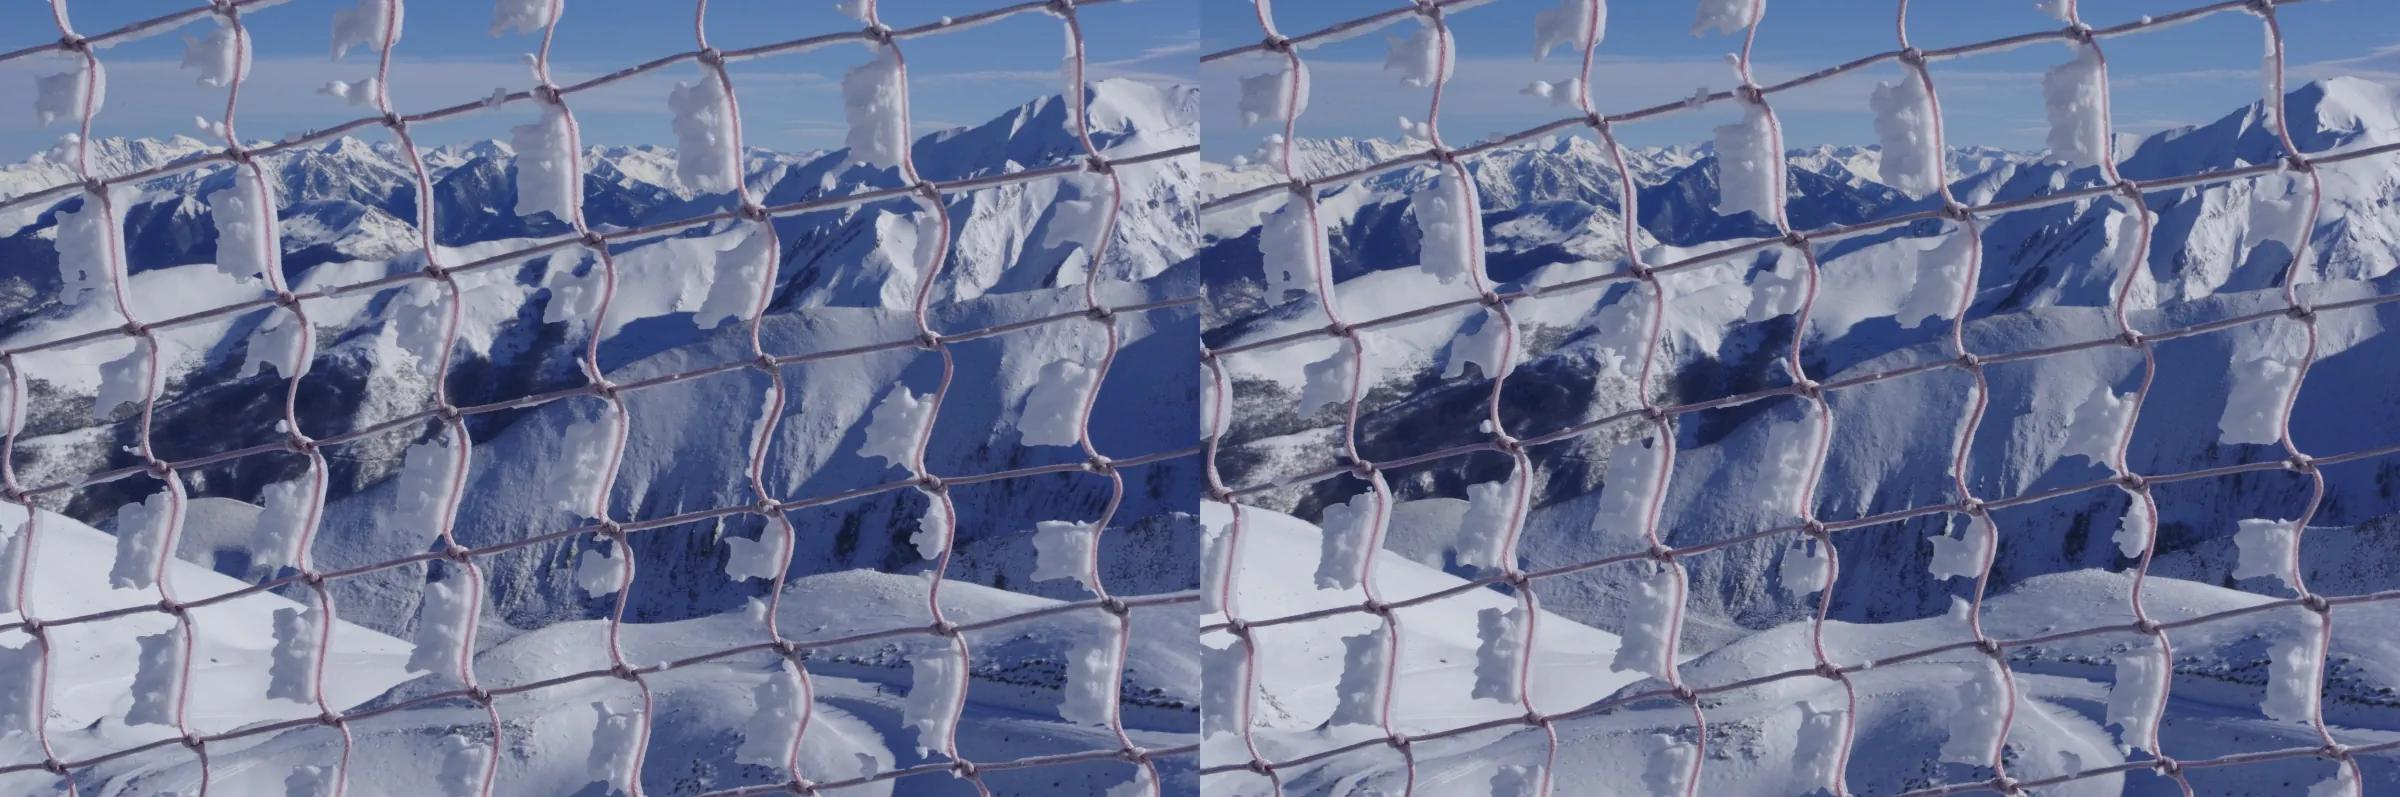 Snowy net in the Pyrenees